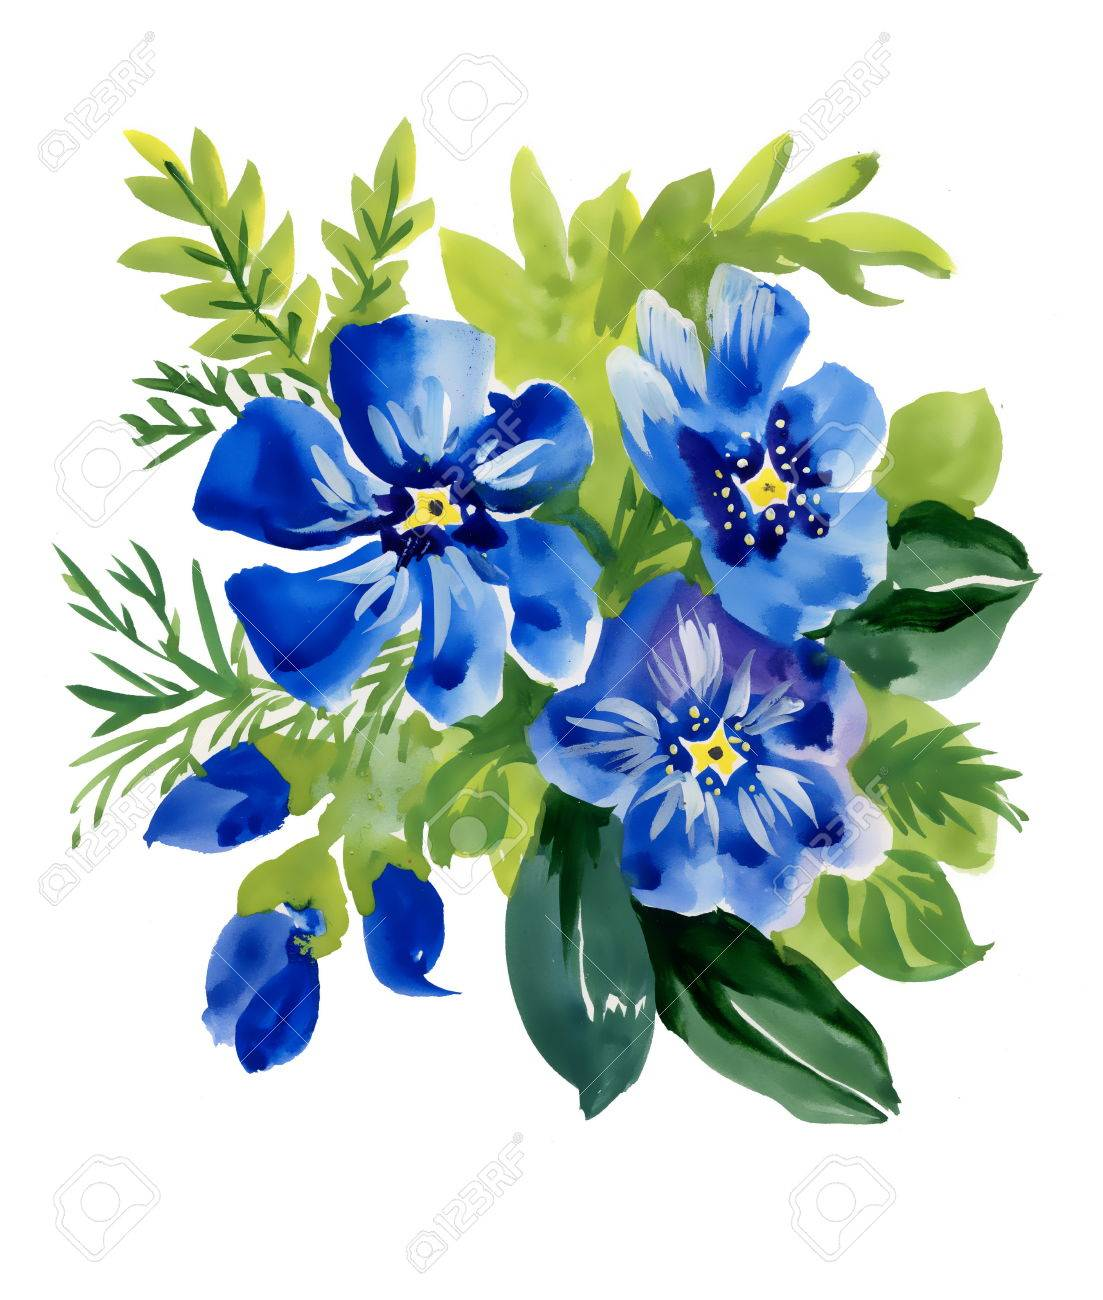 Beautiful Watercolor Blue Flowers Illustration On White Background